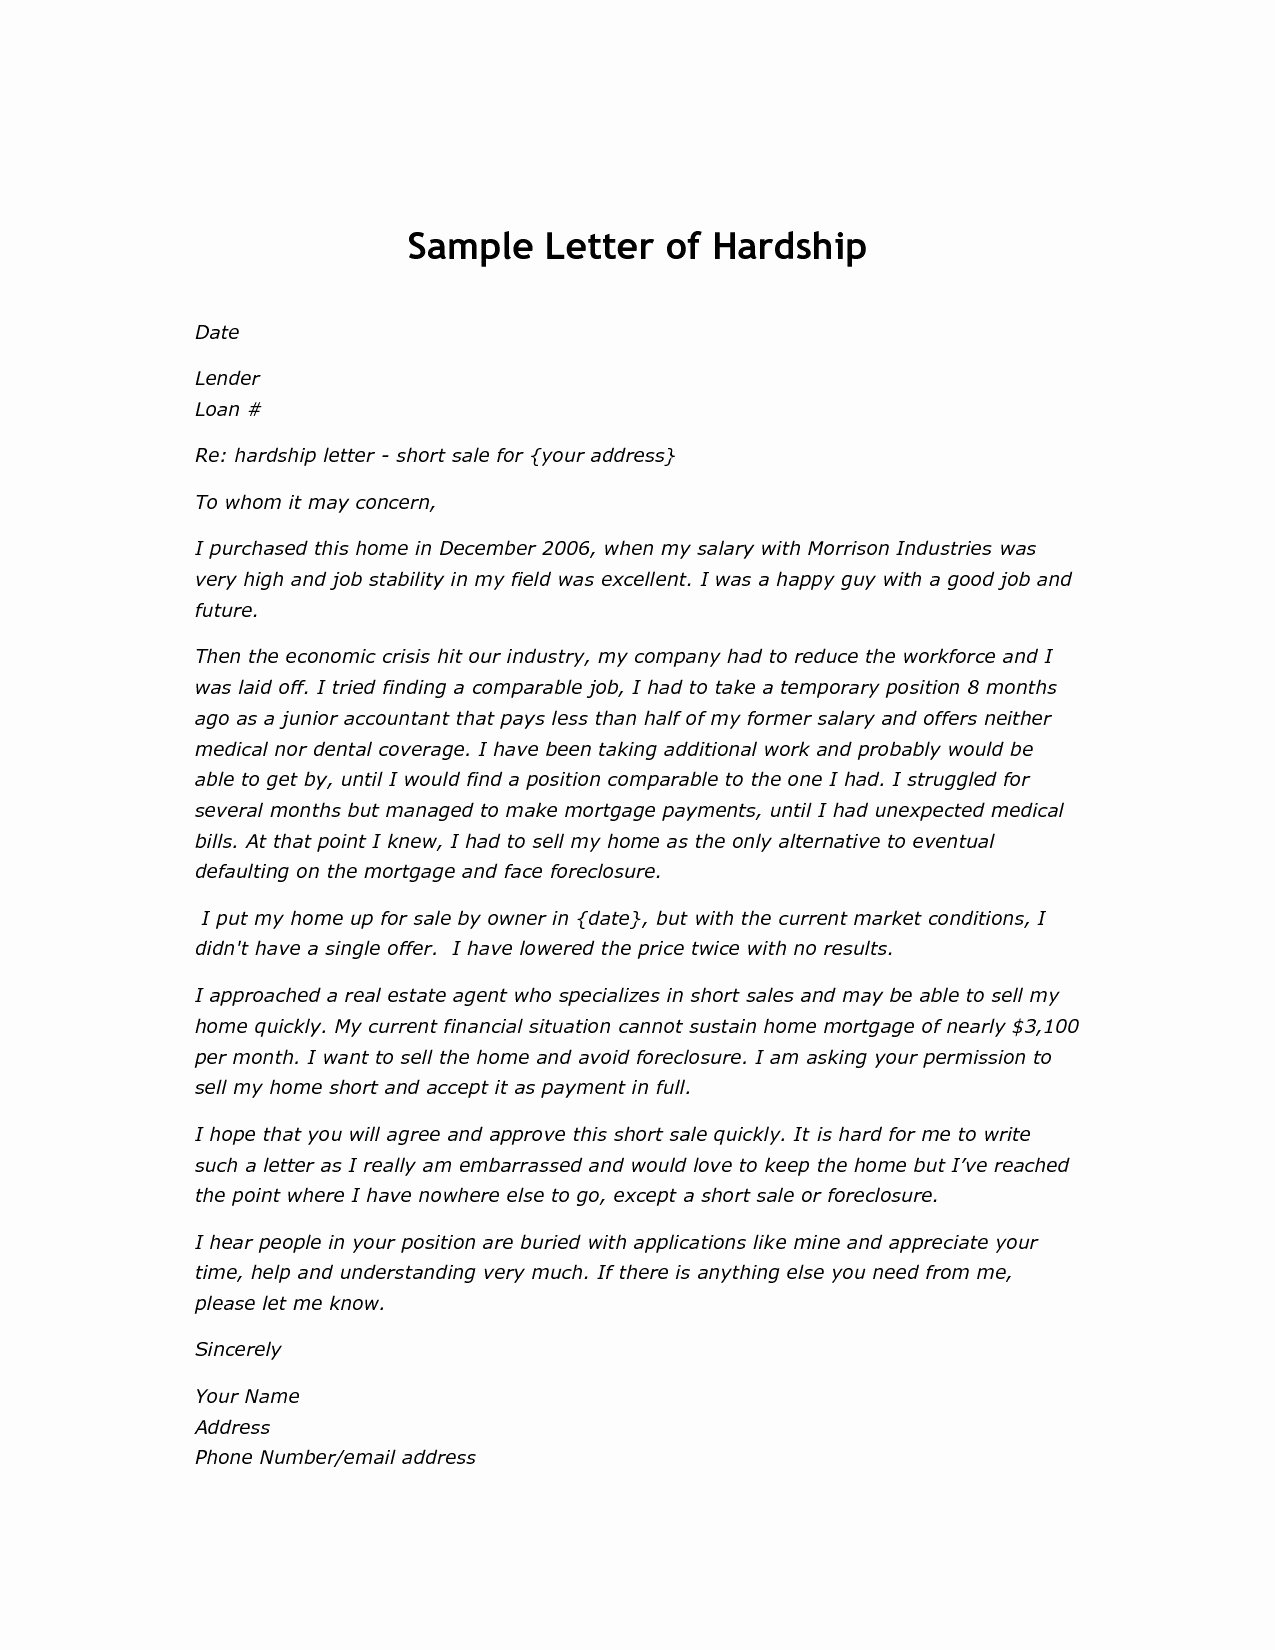 Sample Payment Shock Letter Fresh Mortgage Payment Shock Letter Template Collection